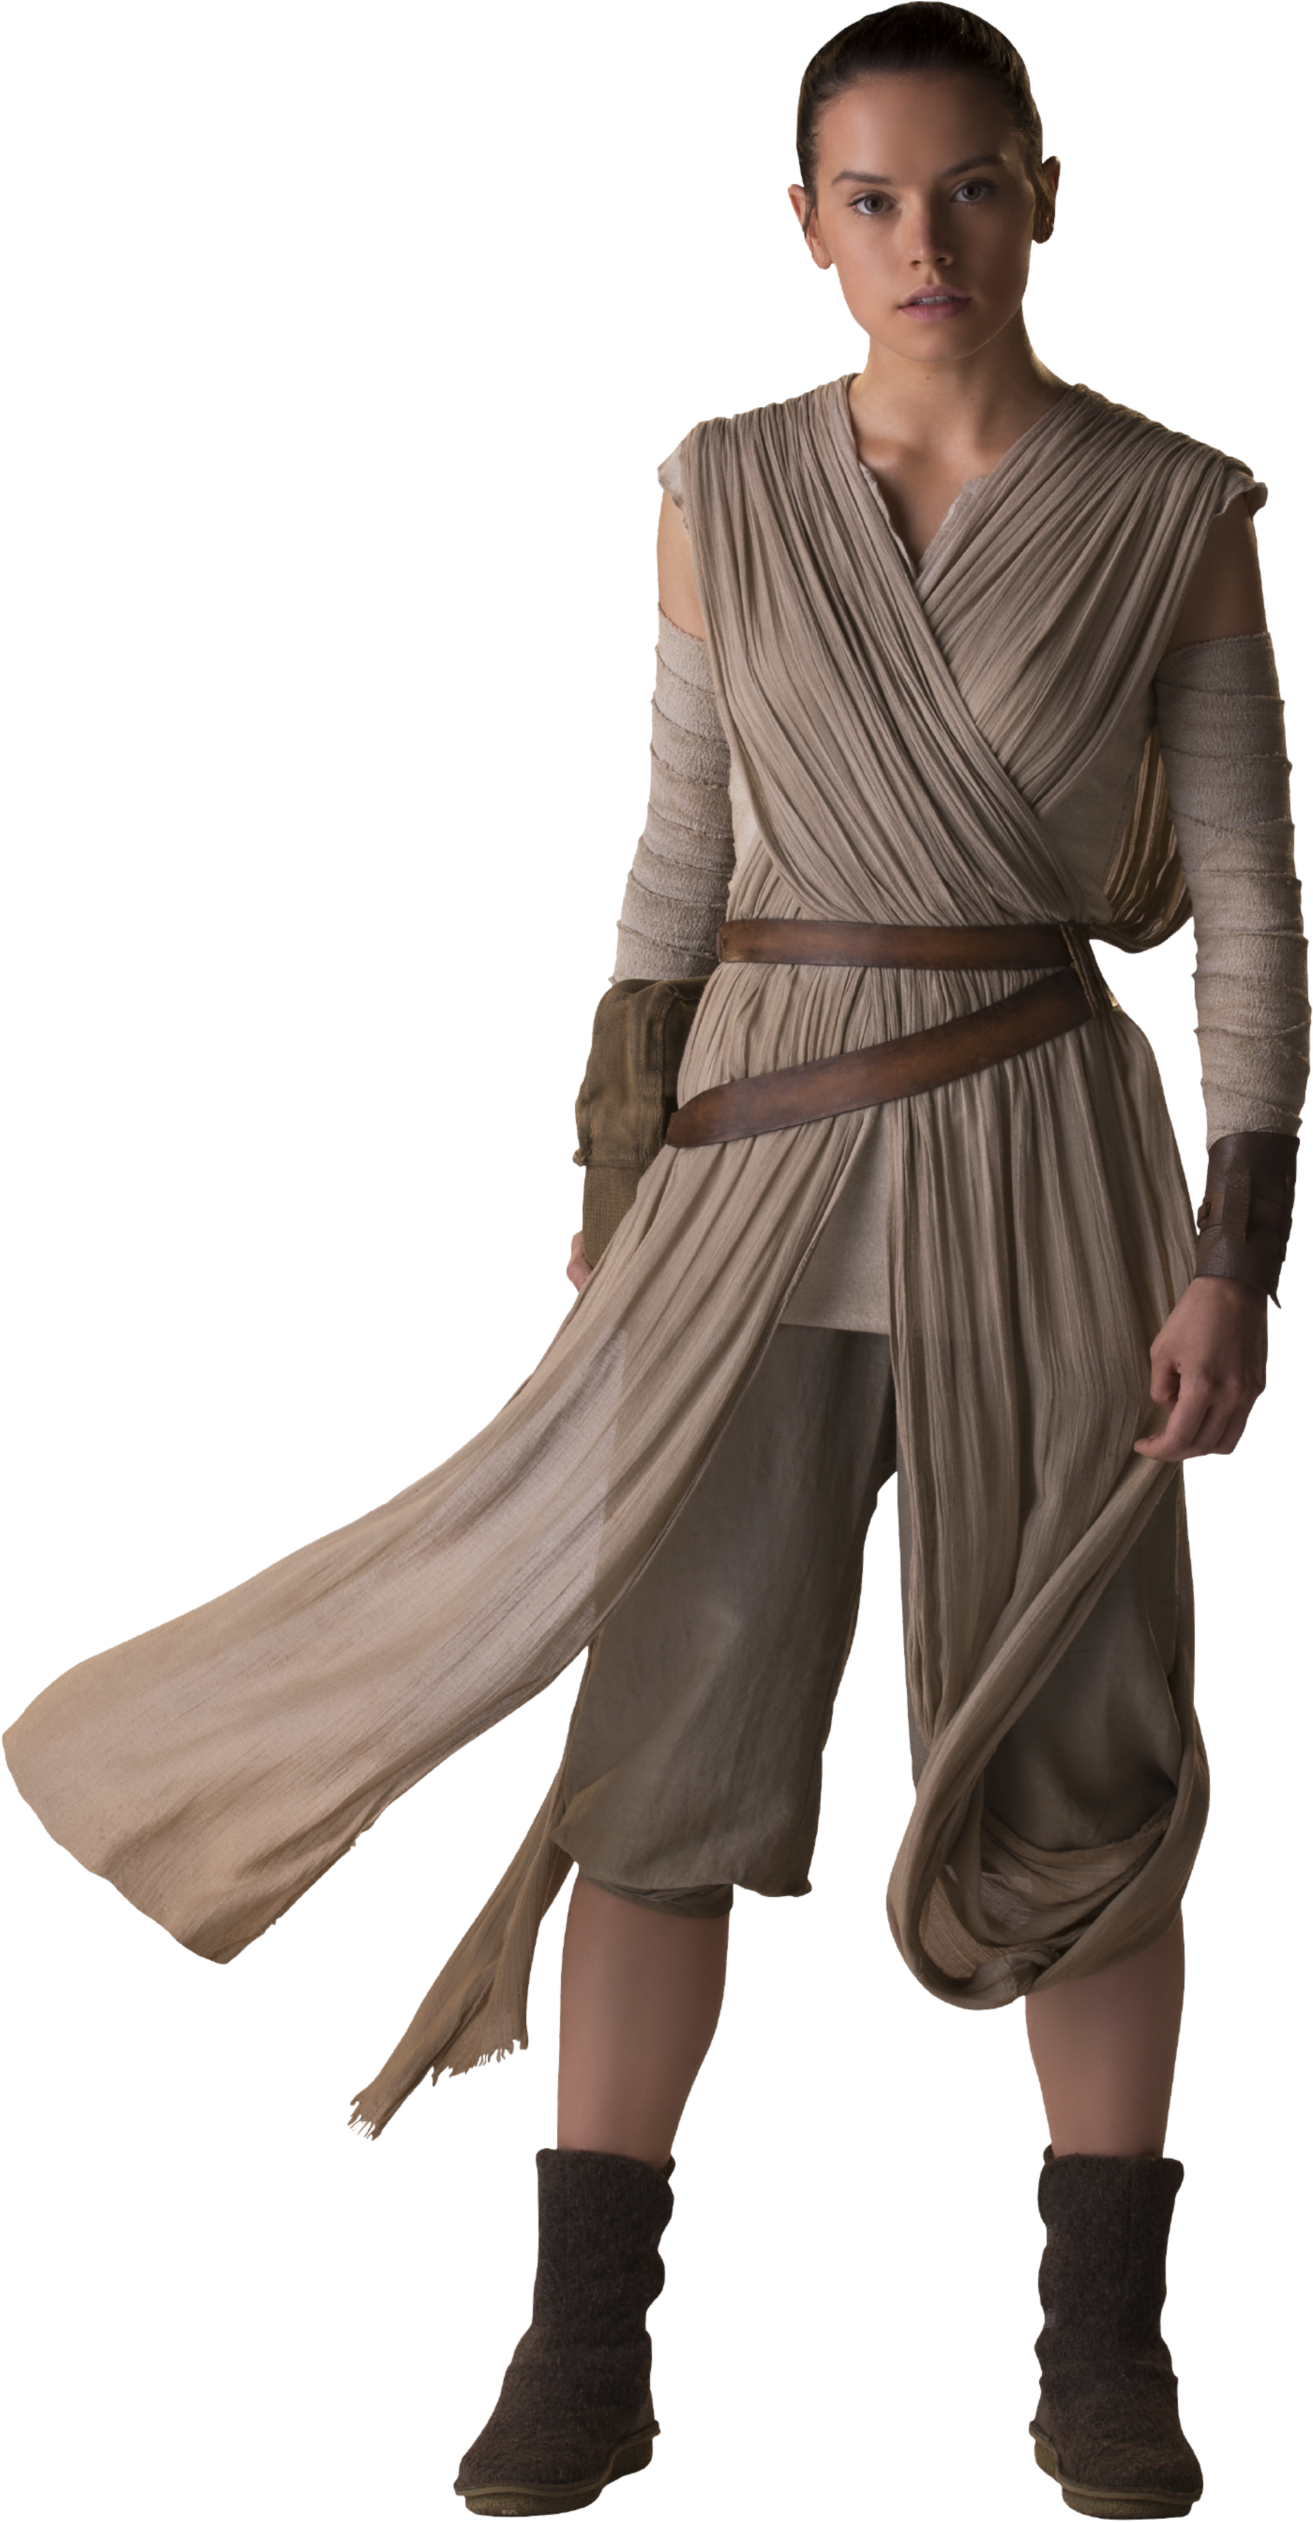 png freeuse stock Rey transparent. Skywalker star wars ep.